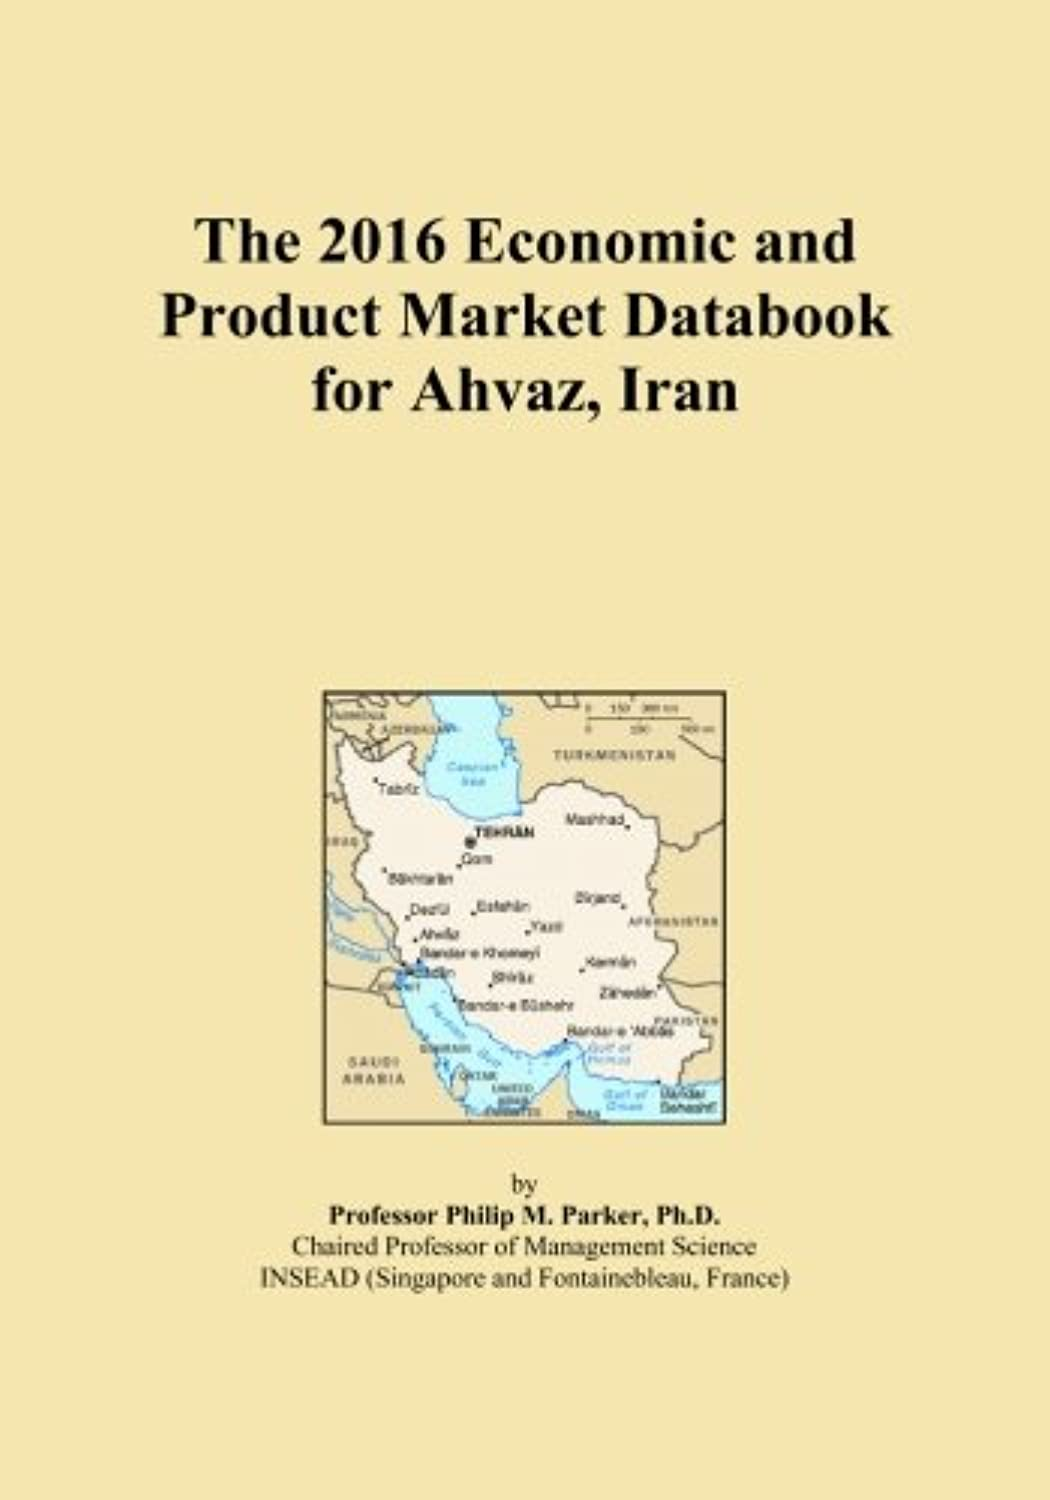 The 2016 Economic and Product Market Databook for Ahvaz, Iran